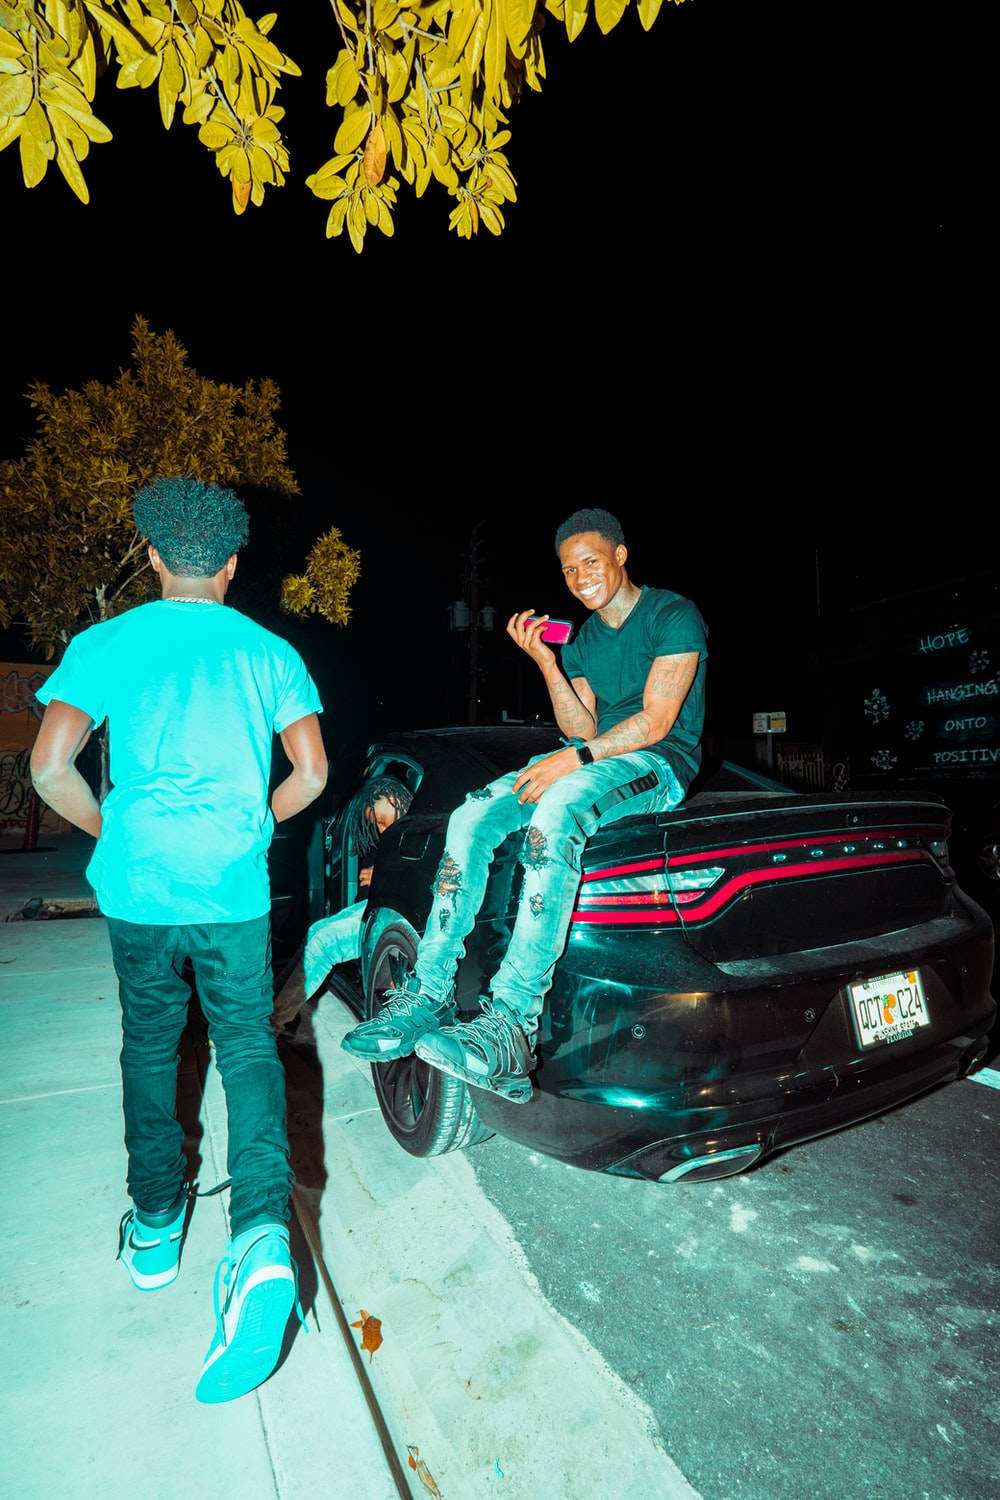 man in blue t-shirt and blue denim jeans standing beside black car during night time